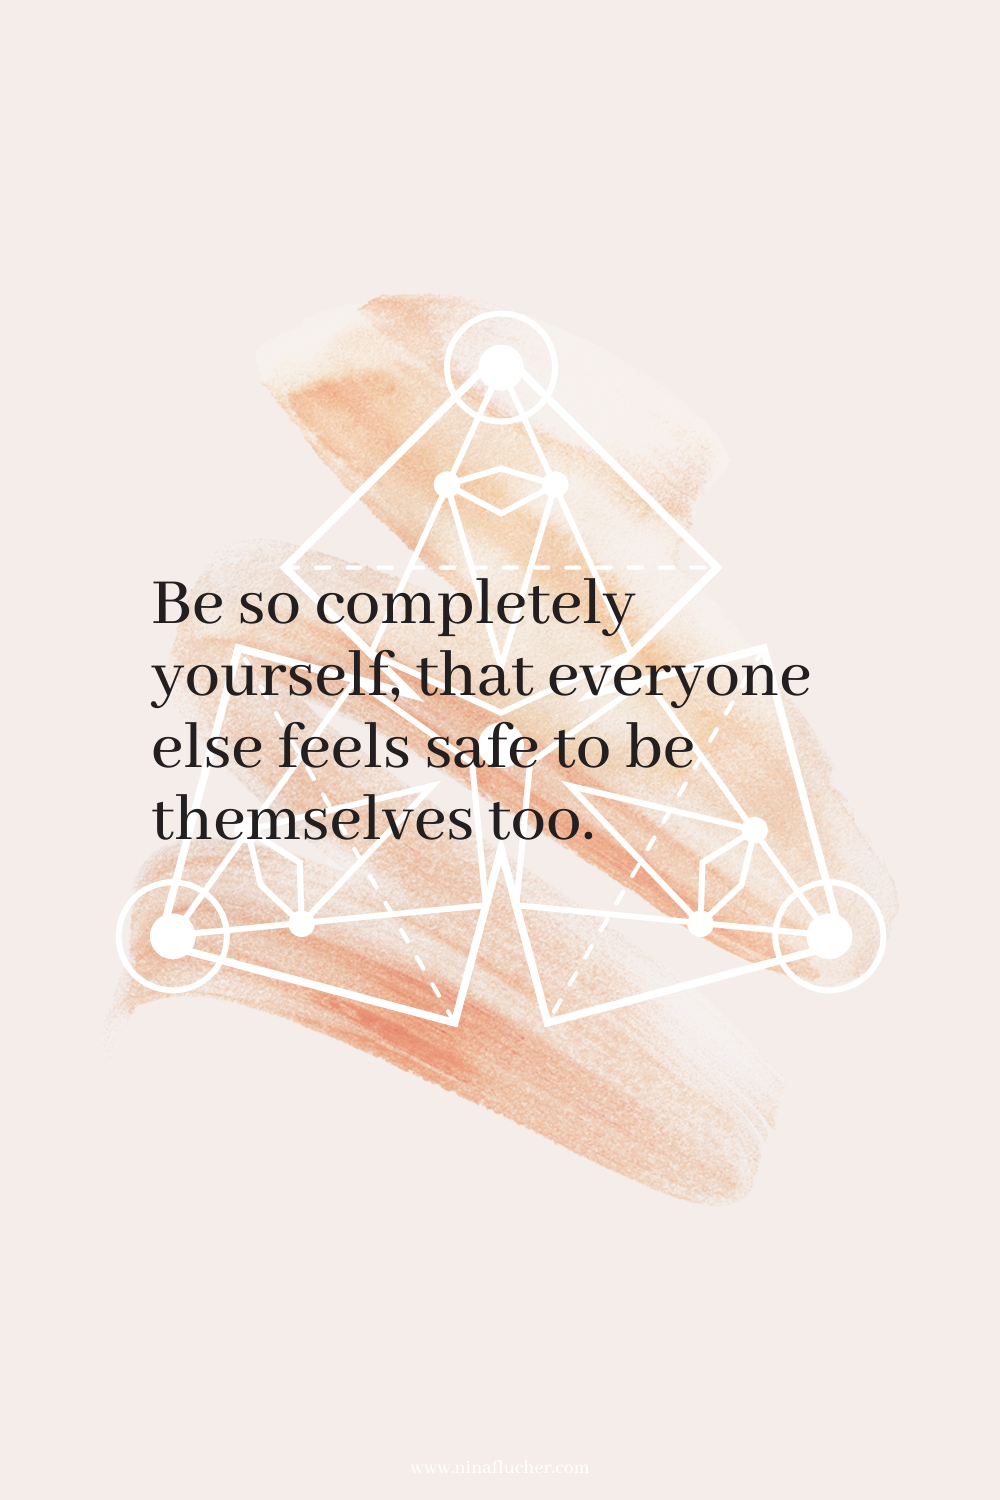 Be so completely yourself, that everyone else feels safe to be themselves too.